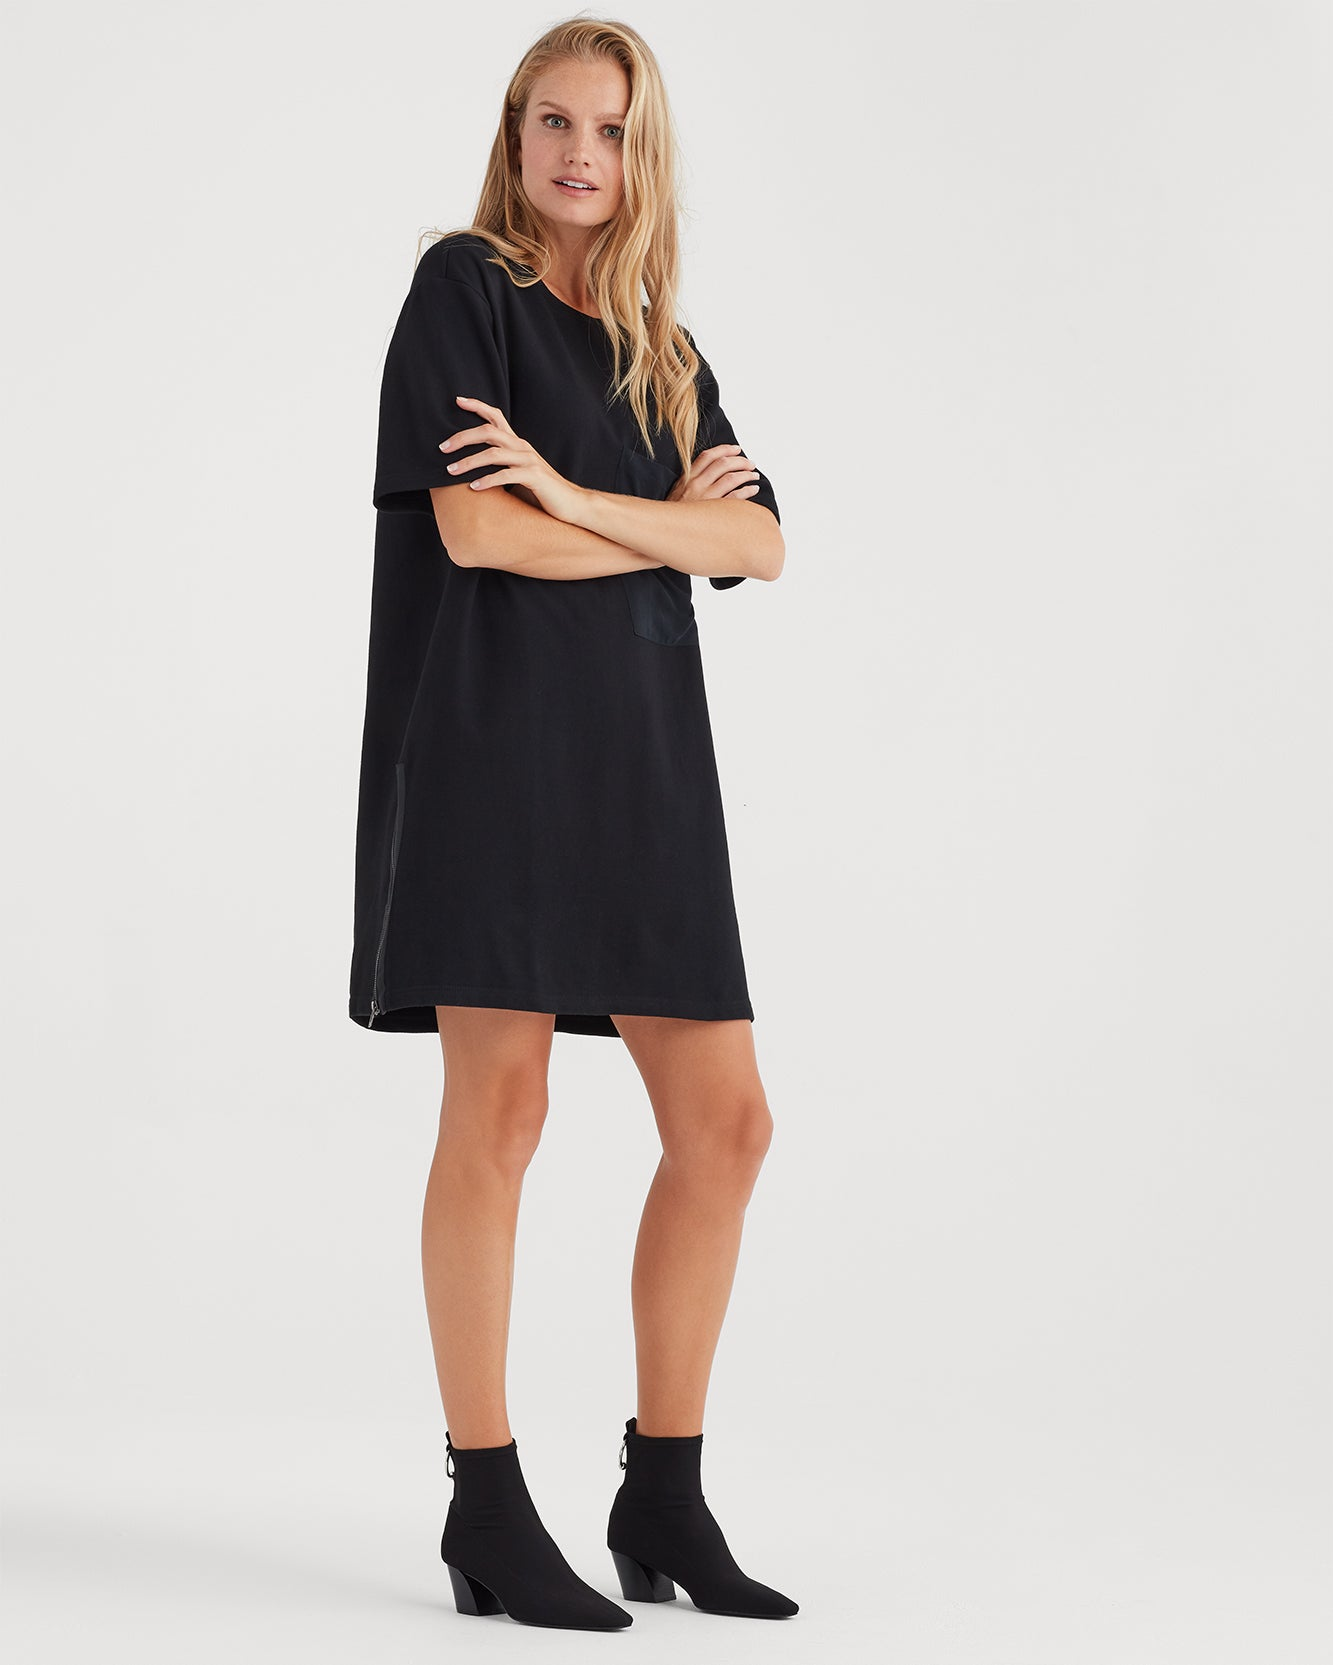 Image of Large Pocket Dress in Black